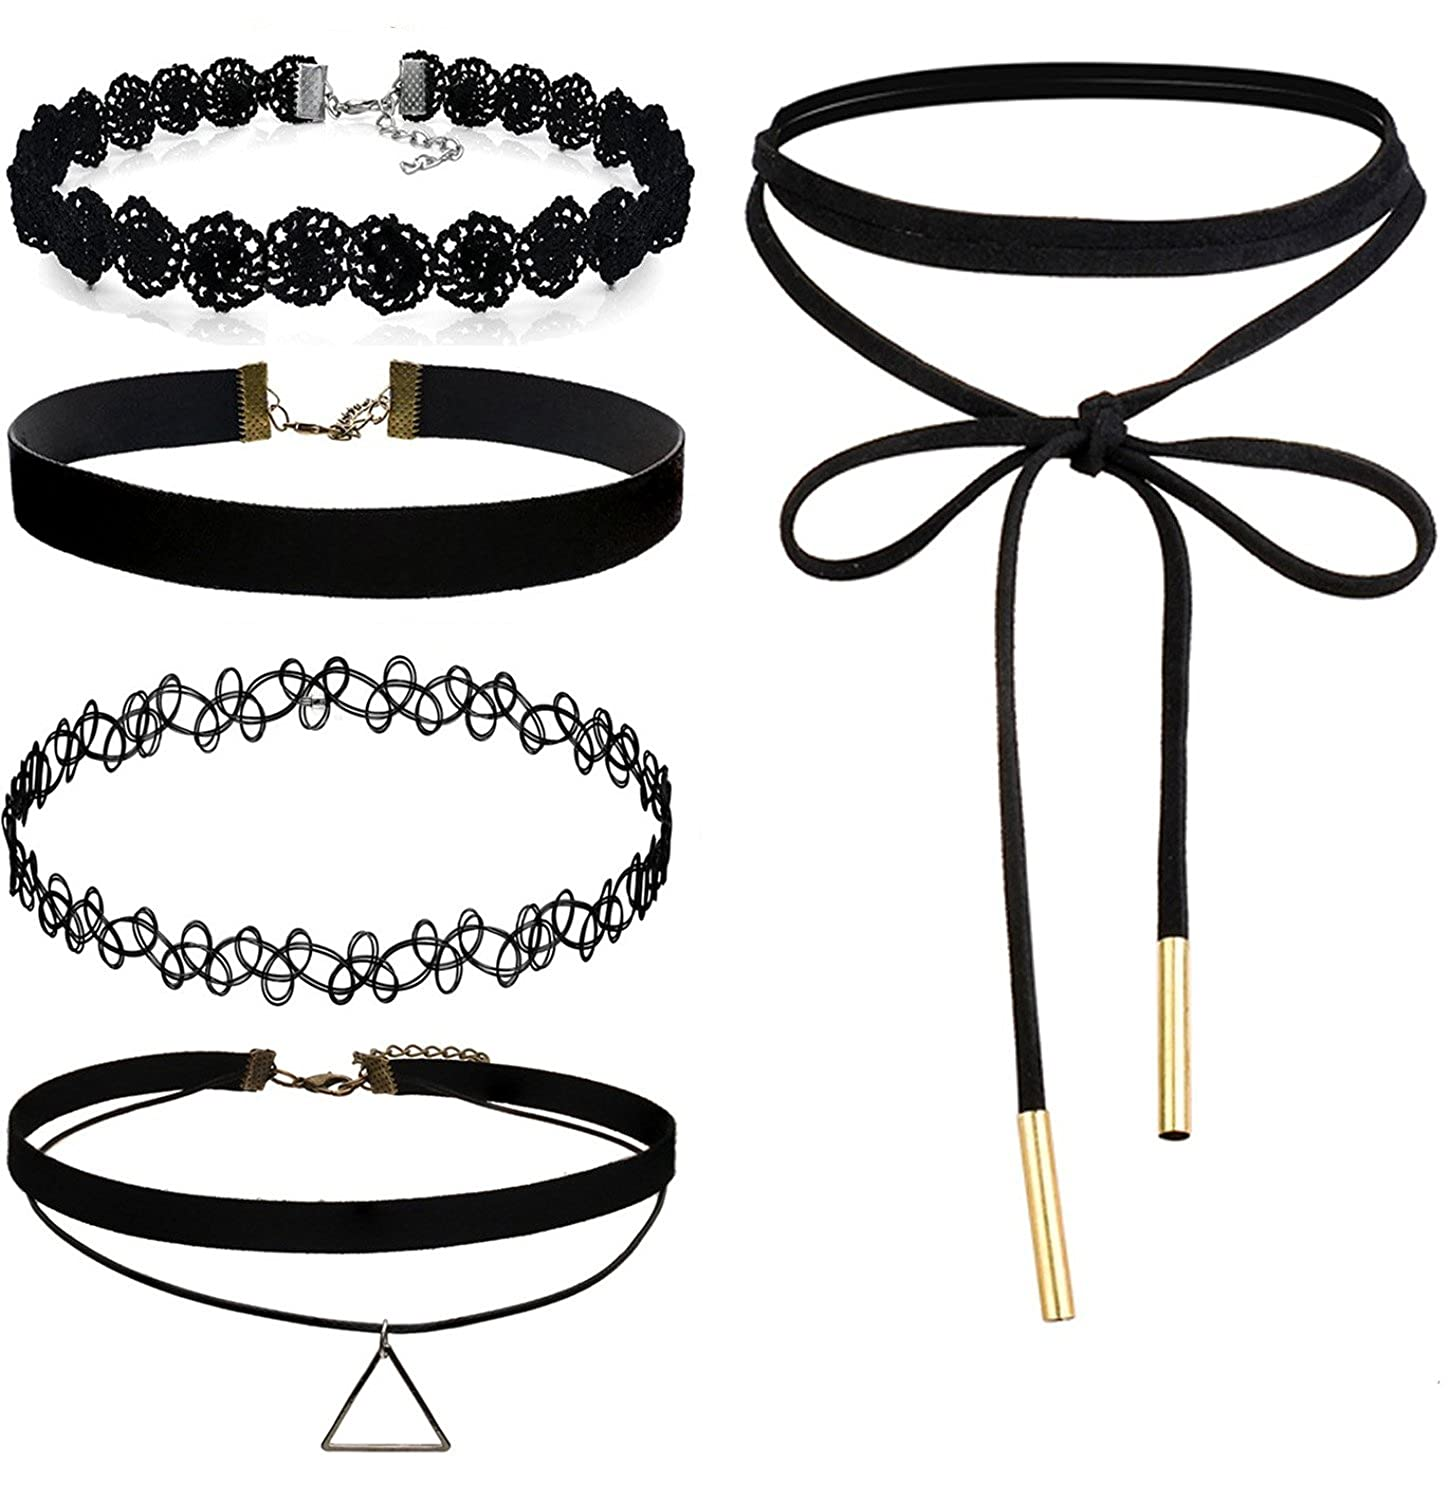 Flongo Womens Ladies 5PCS Rock Black Velvet Leather Lace Choker Necklace Tattoo Collar Neckband, 14 inch Chain F042064